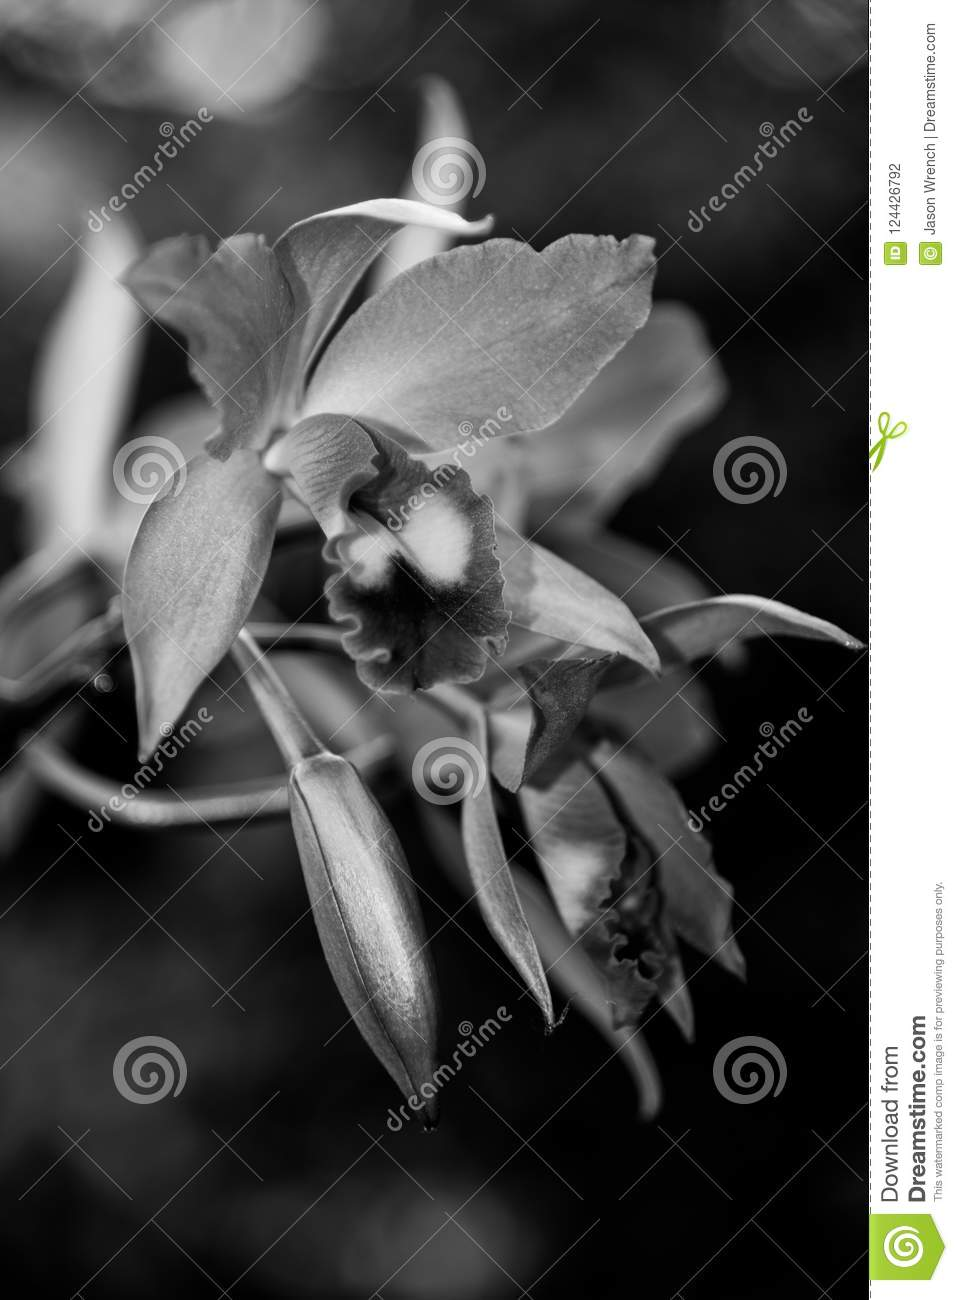 Cattleya Orchid Flowers In Black And White Stock Photo Image Of